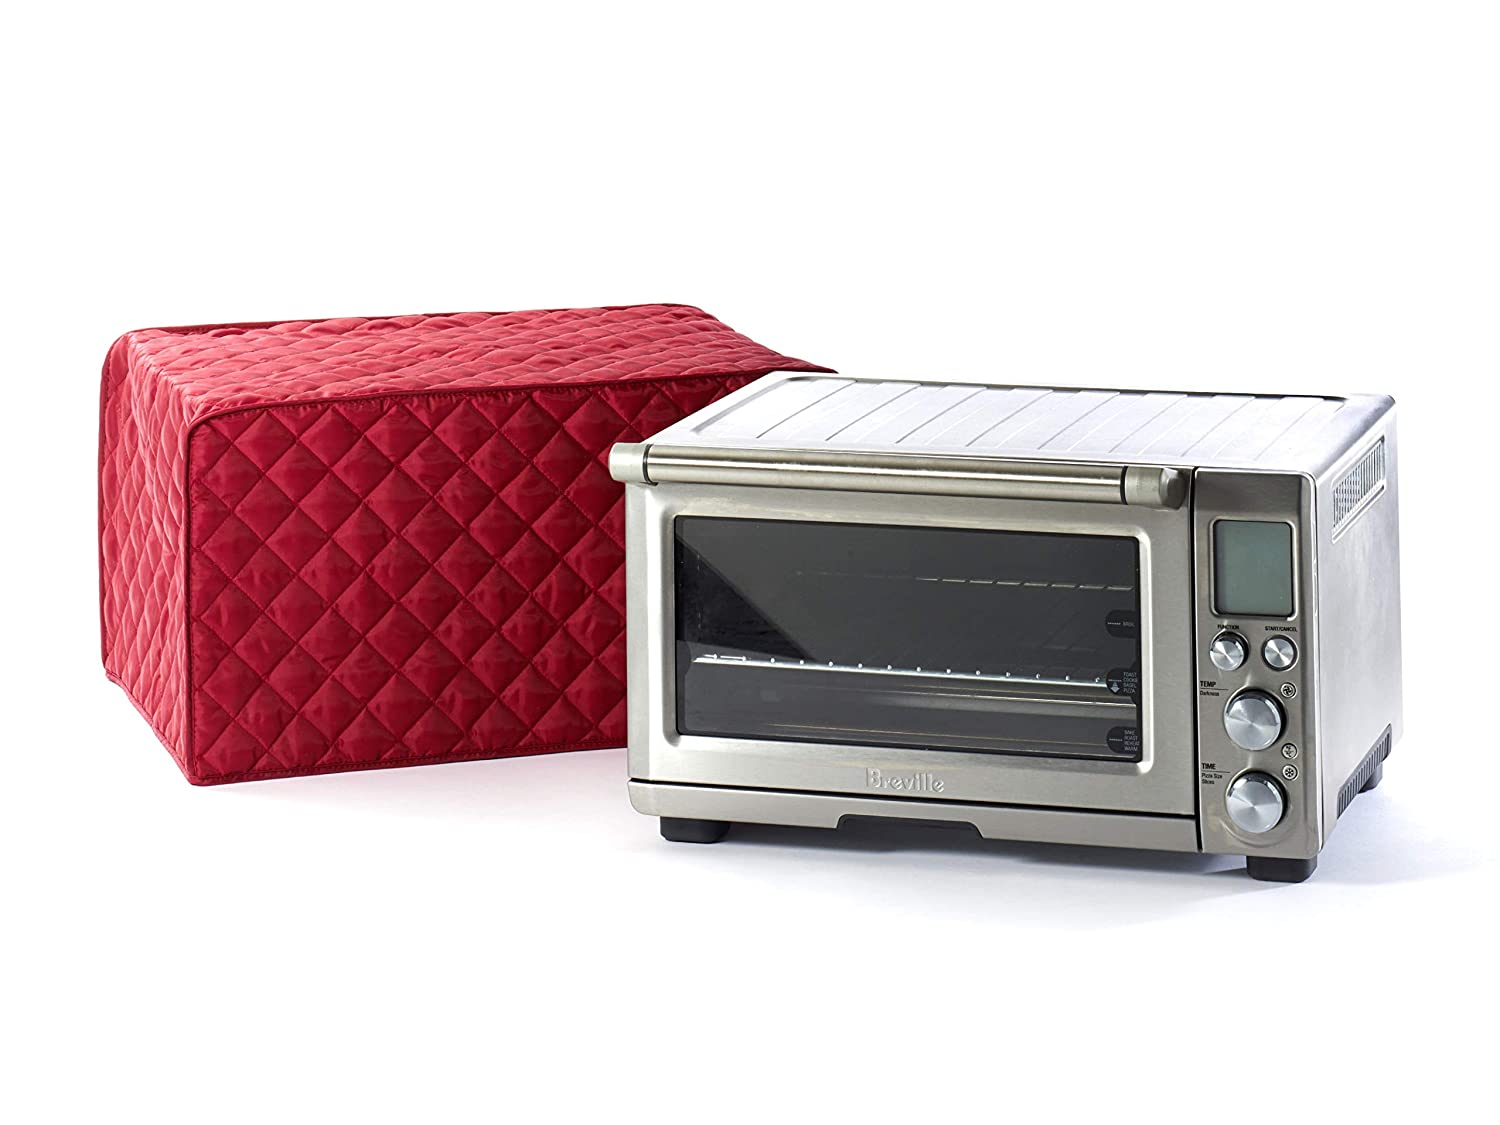 CoverMates – Toaster Oven Cover – 16W x 10D x 9H – Diamond Collection – 2 YR Warranty – Year Around Protection - Red